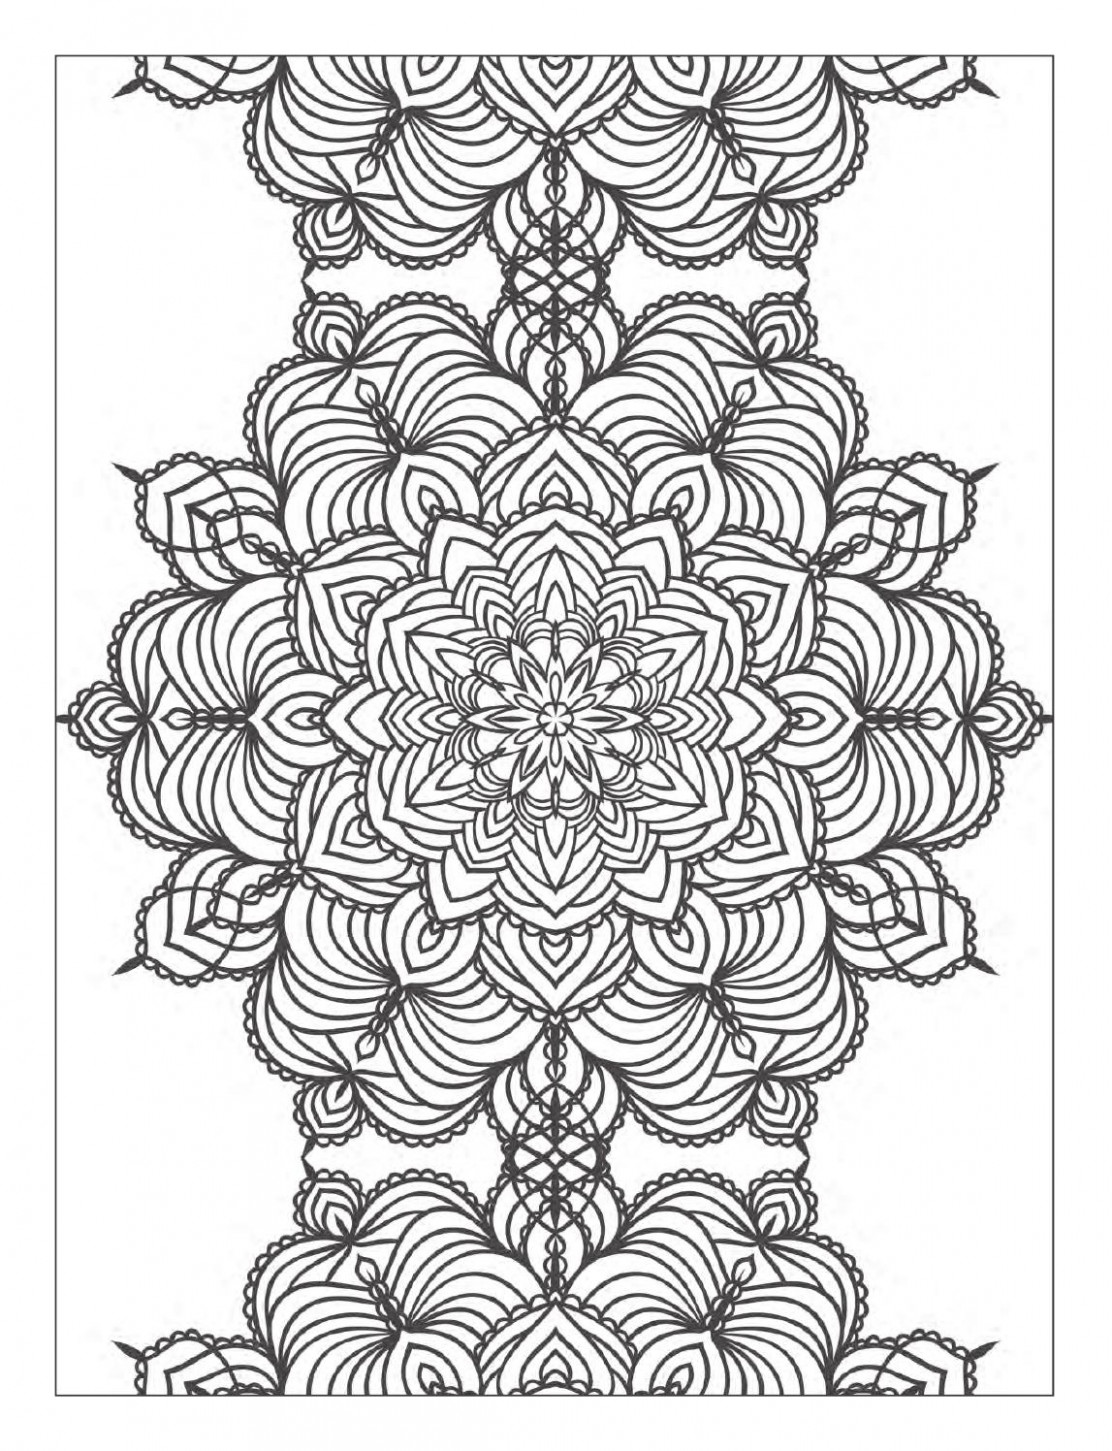 Excellent Meditative Coloring Pages Yoga And Meditation Book For ..